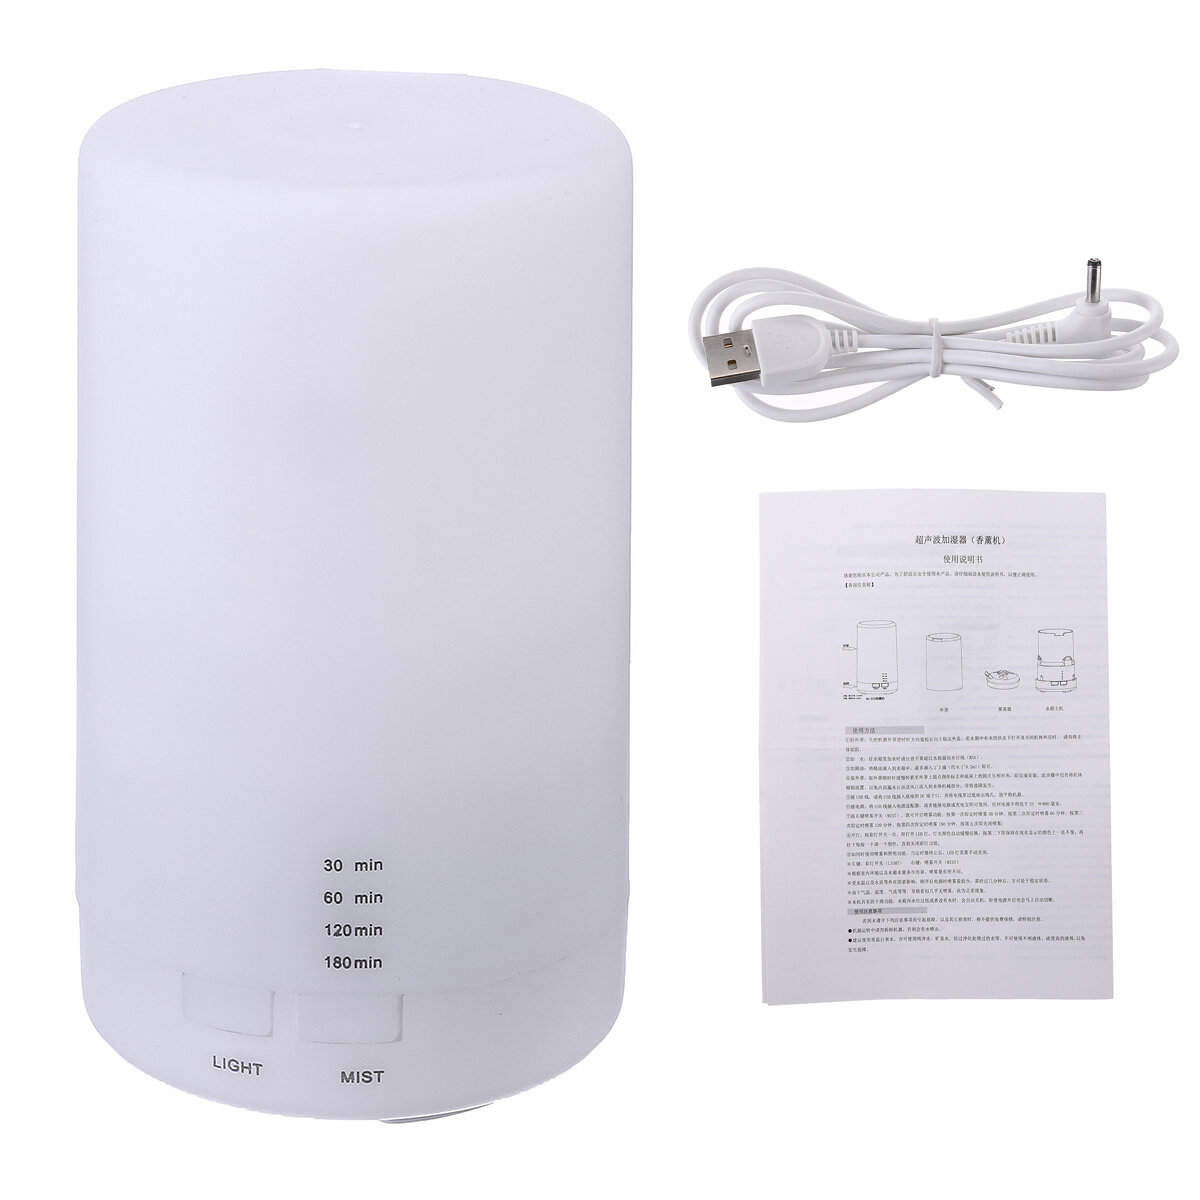 7 LED Ultrasonic Aroma Essential Diffuser Air Humidifier Purifier Aromatherapy Timing Function - 3